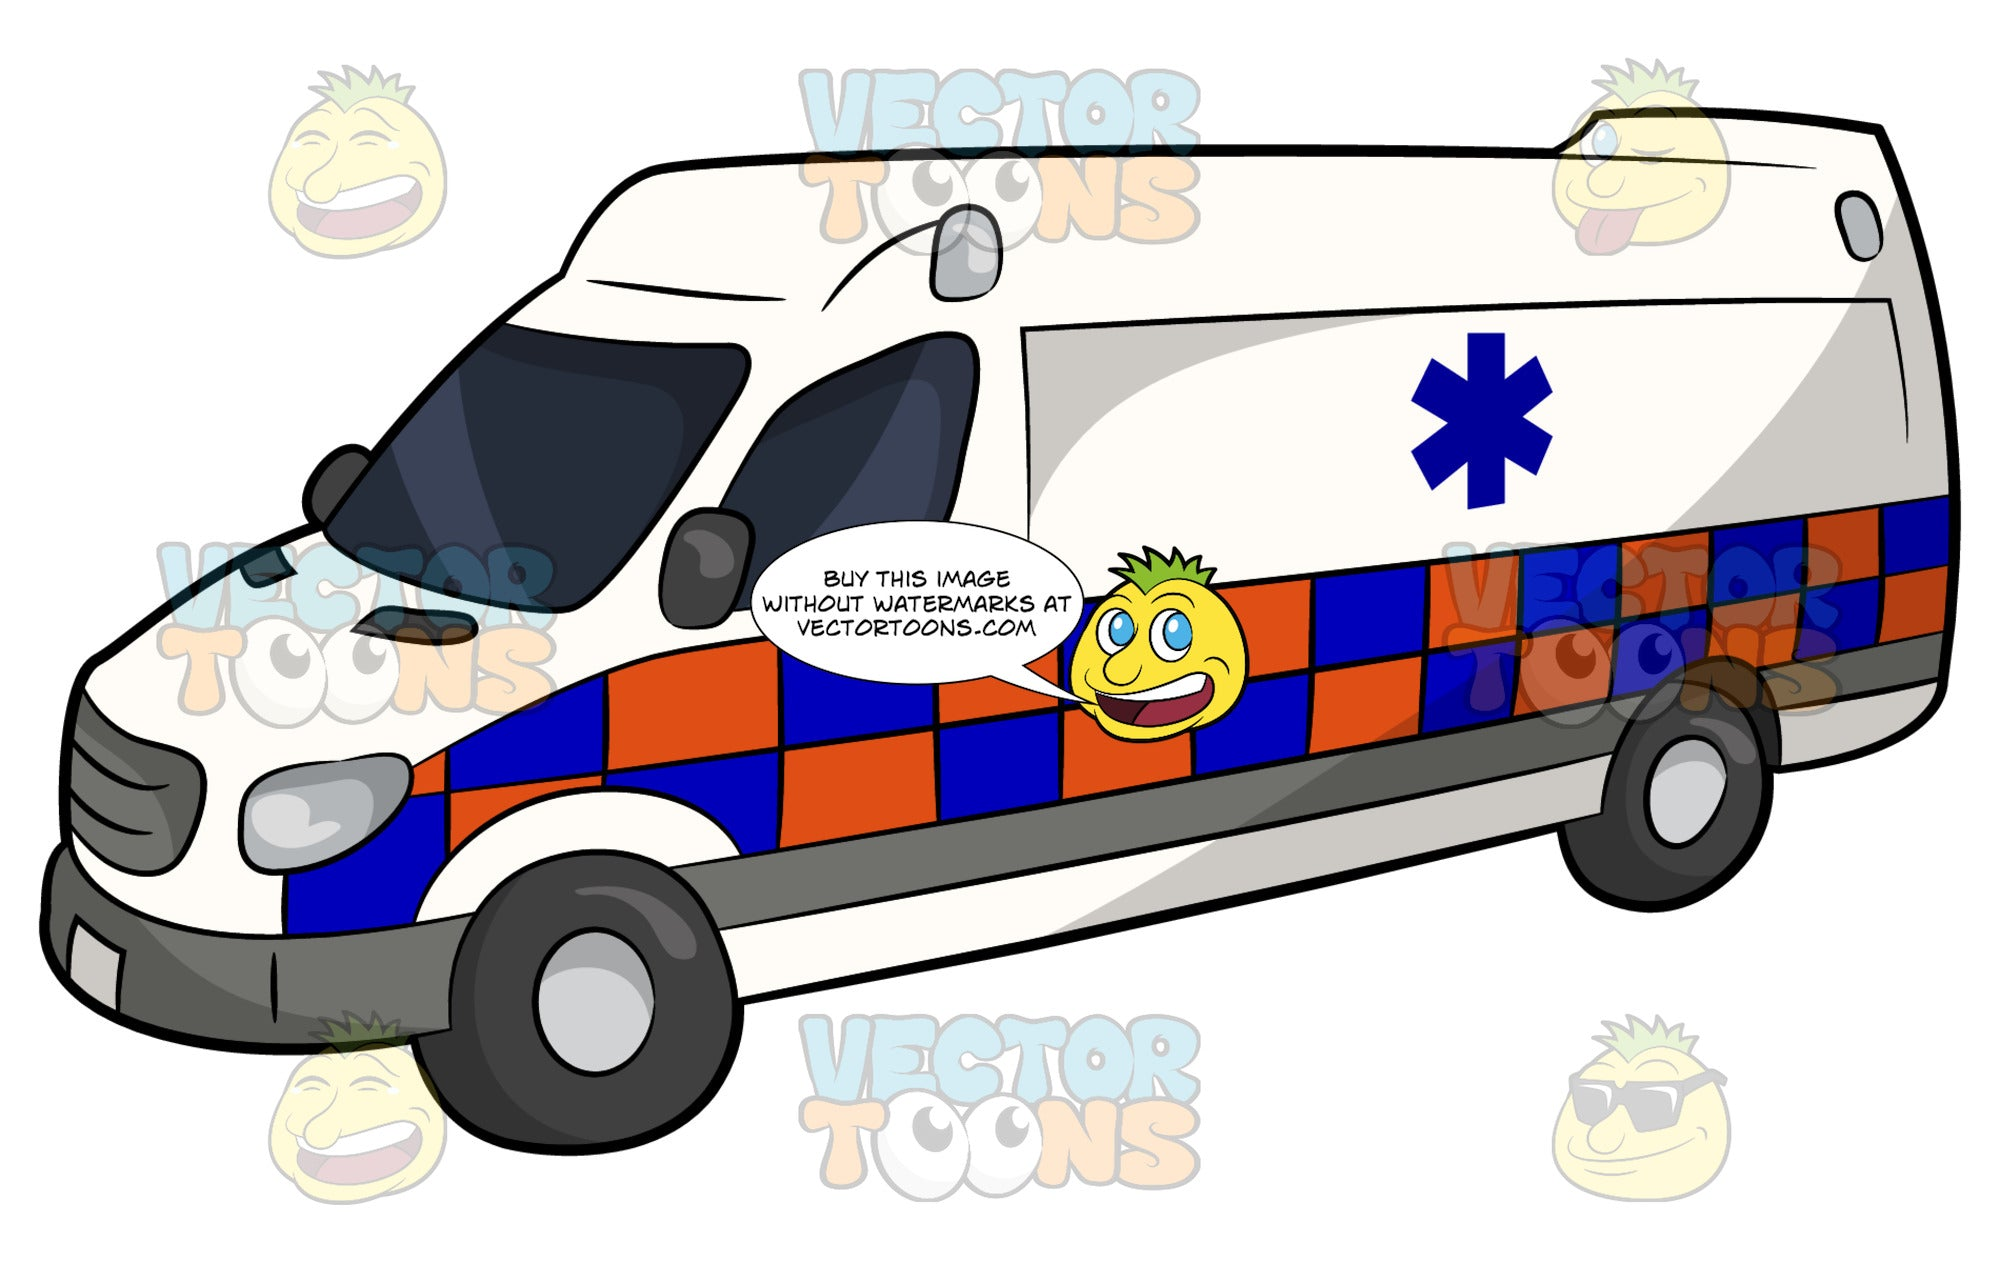 Private Ambulance Service Vehicle. A white van with blue and orange checkered lower half, and blue emergency medical technician symbol on the side.